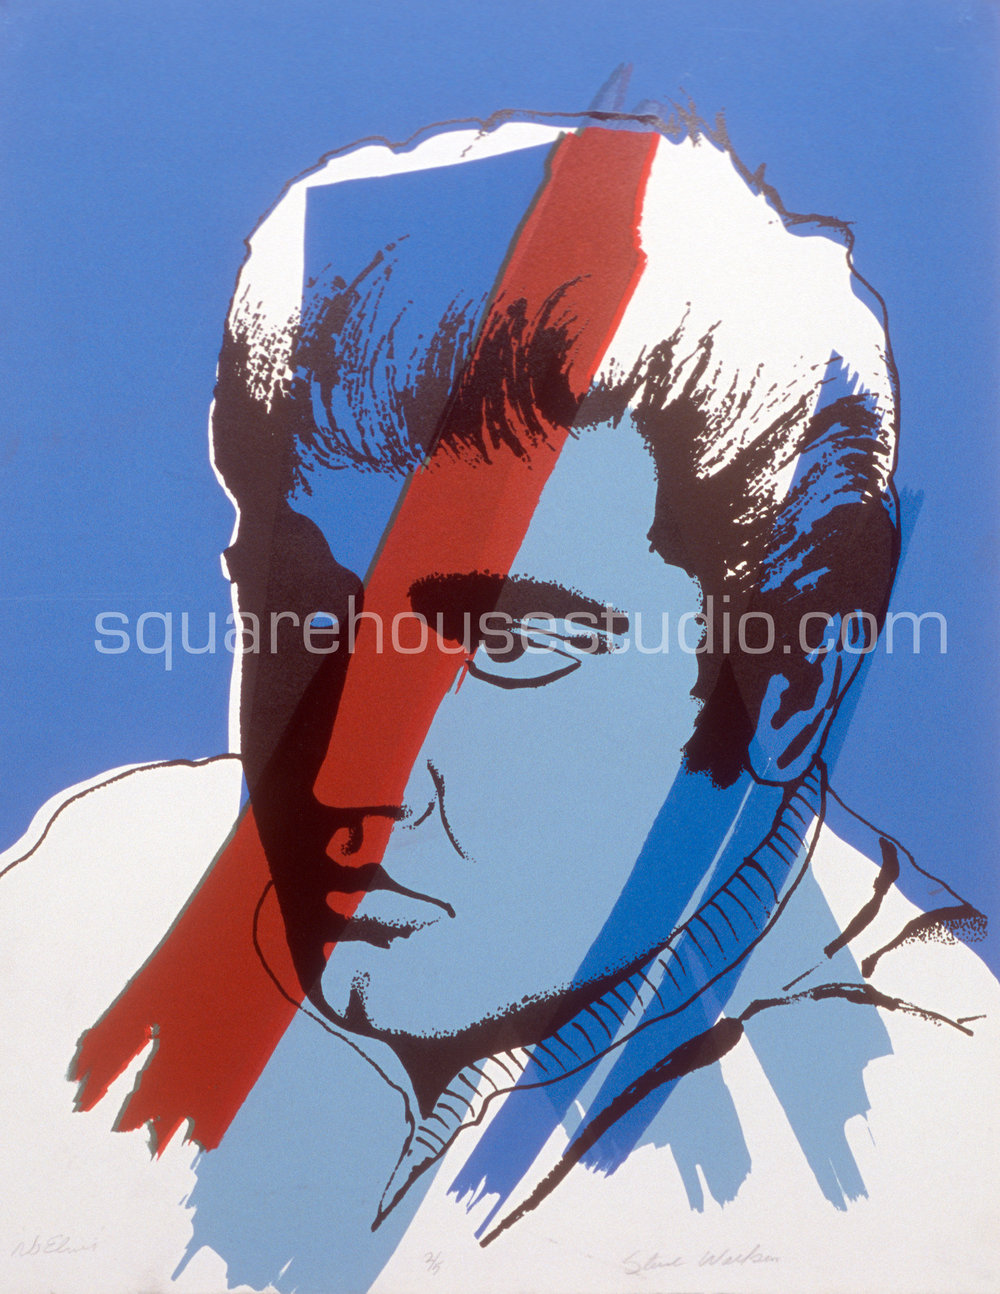 "No Elvis , 20"" x 28,"" original edition, $625 framed / $475 unframed, Available as giclée print—$450 framed / $300 unframed"